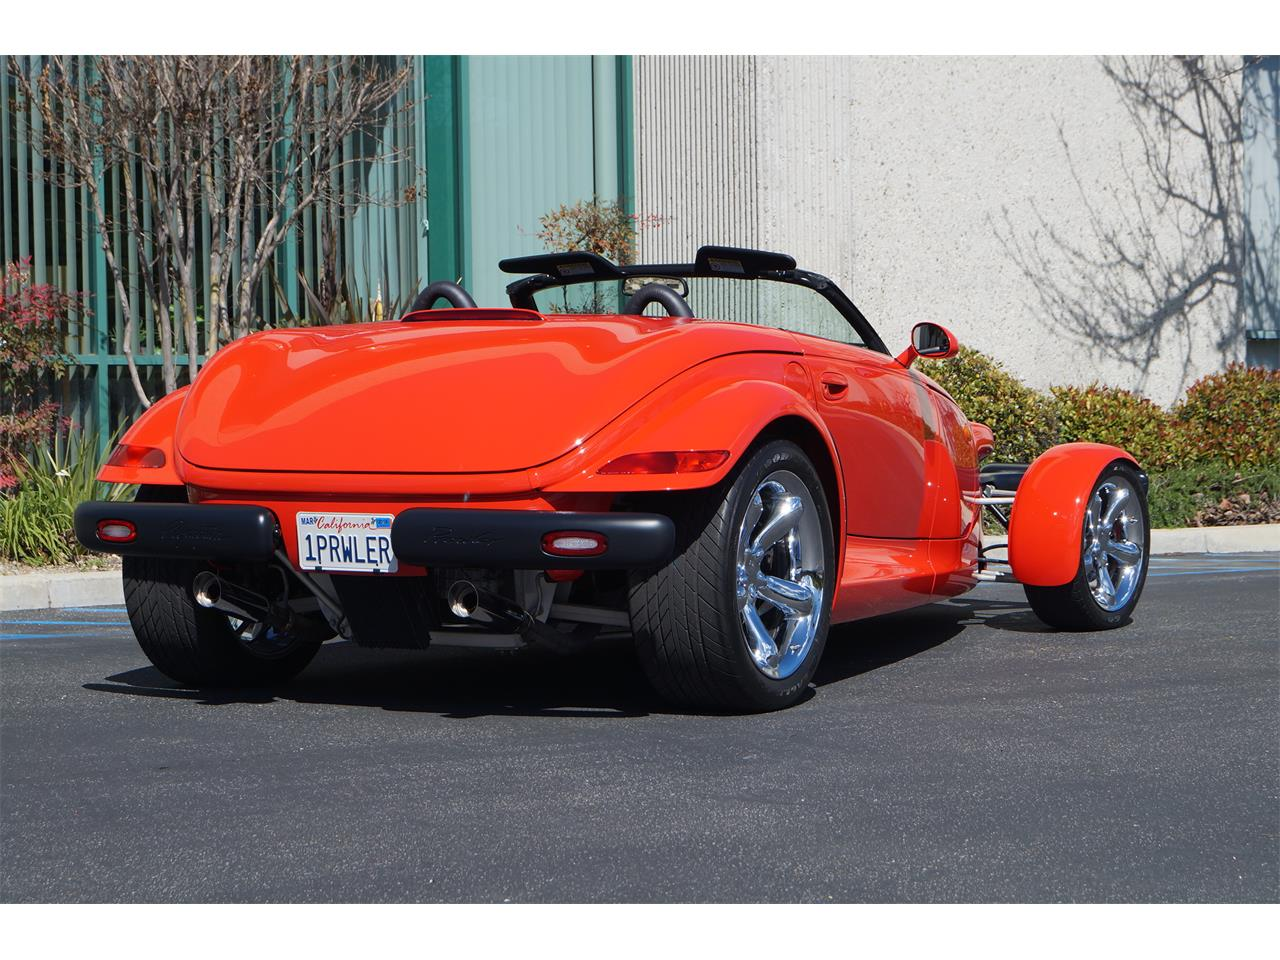 2000 Plymouth Prowler for sale in Thousand Oaks, CA – photo 6